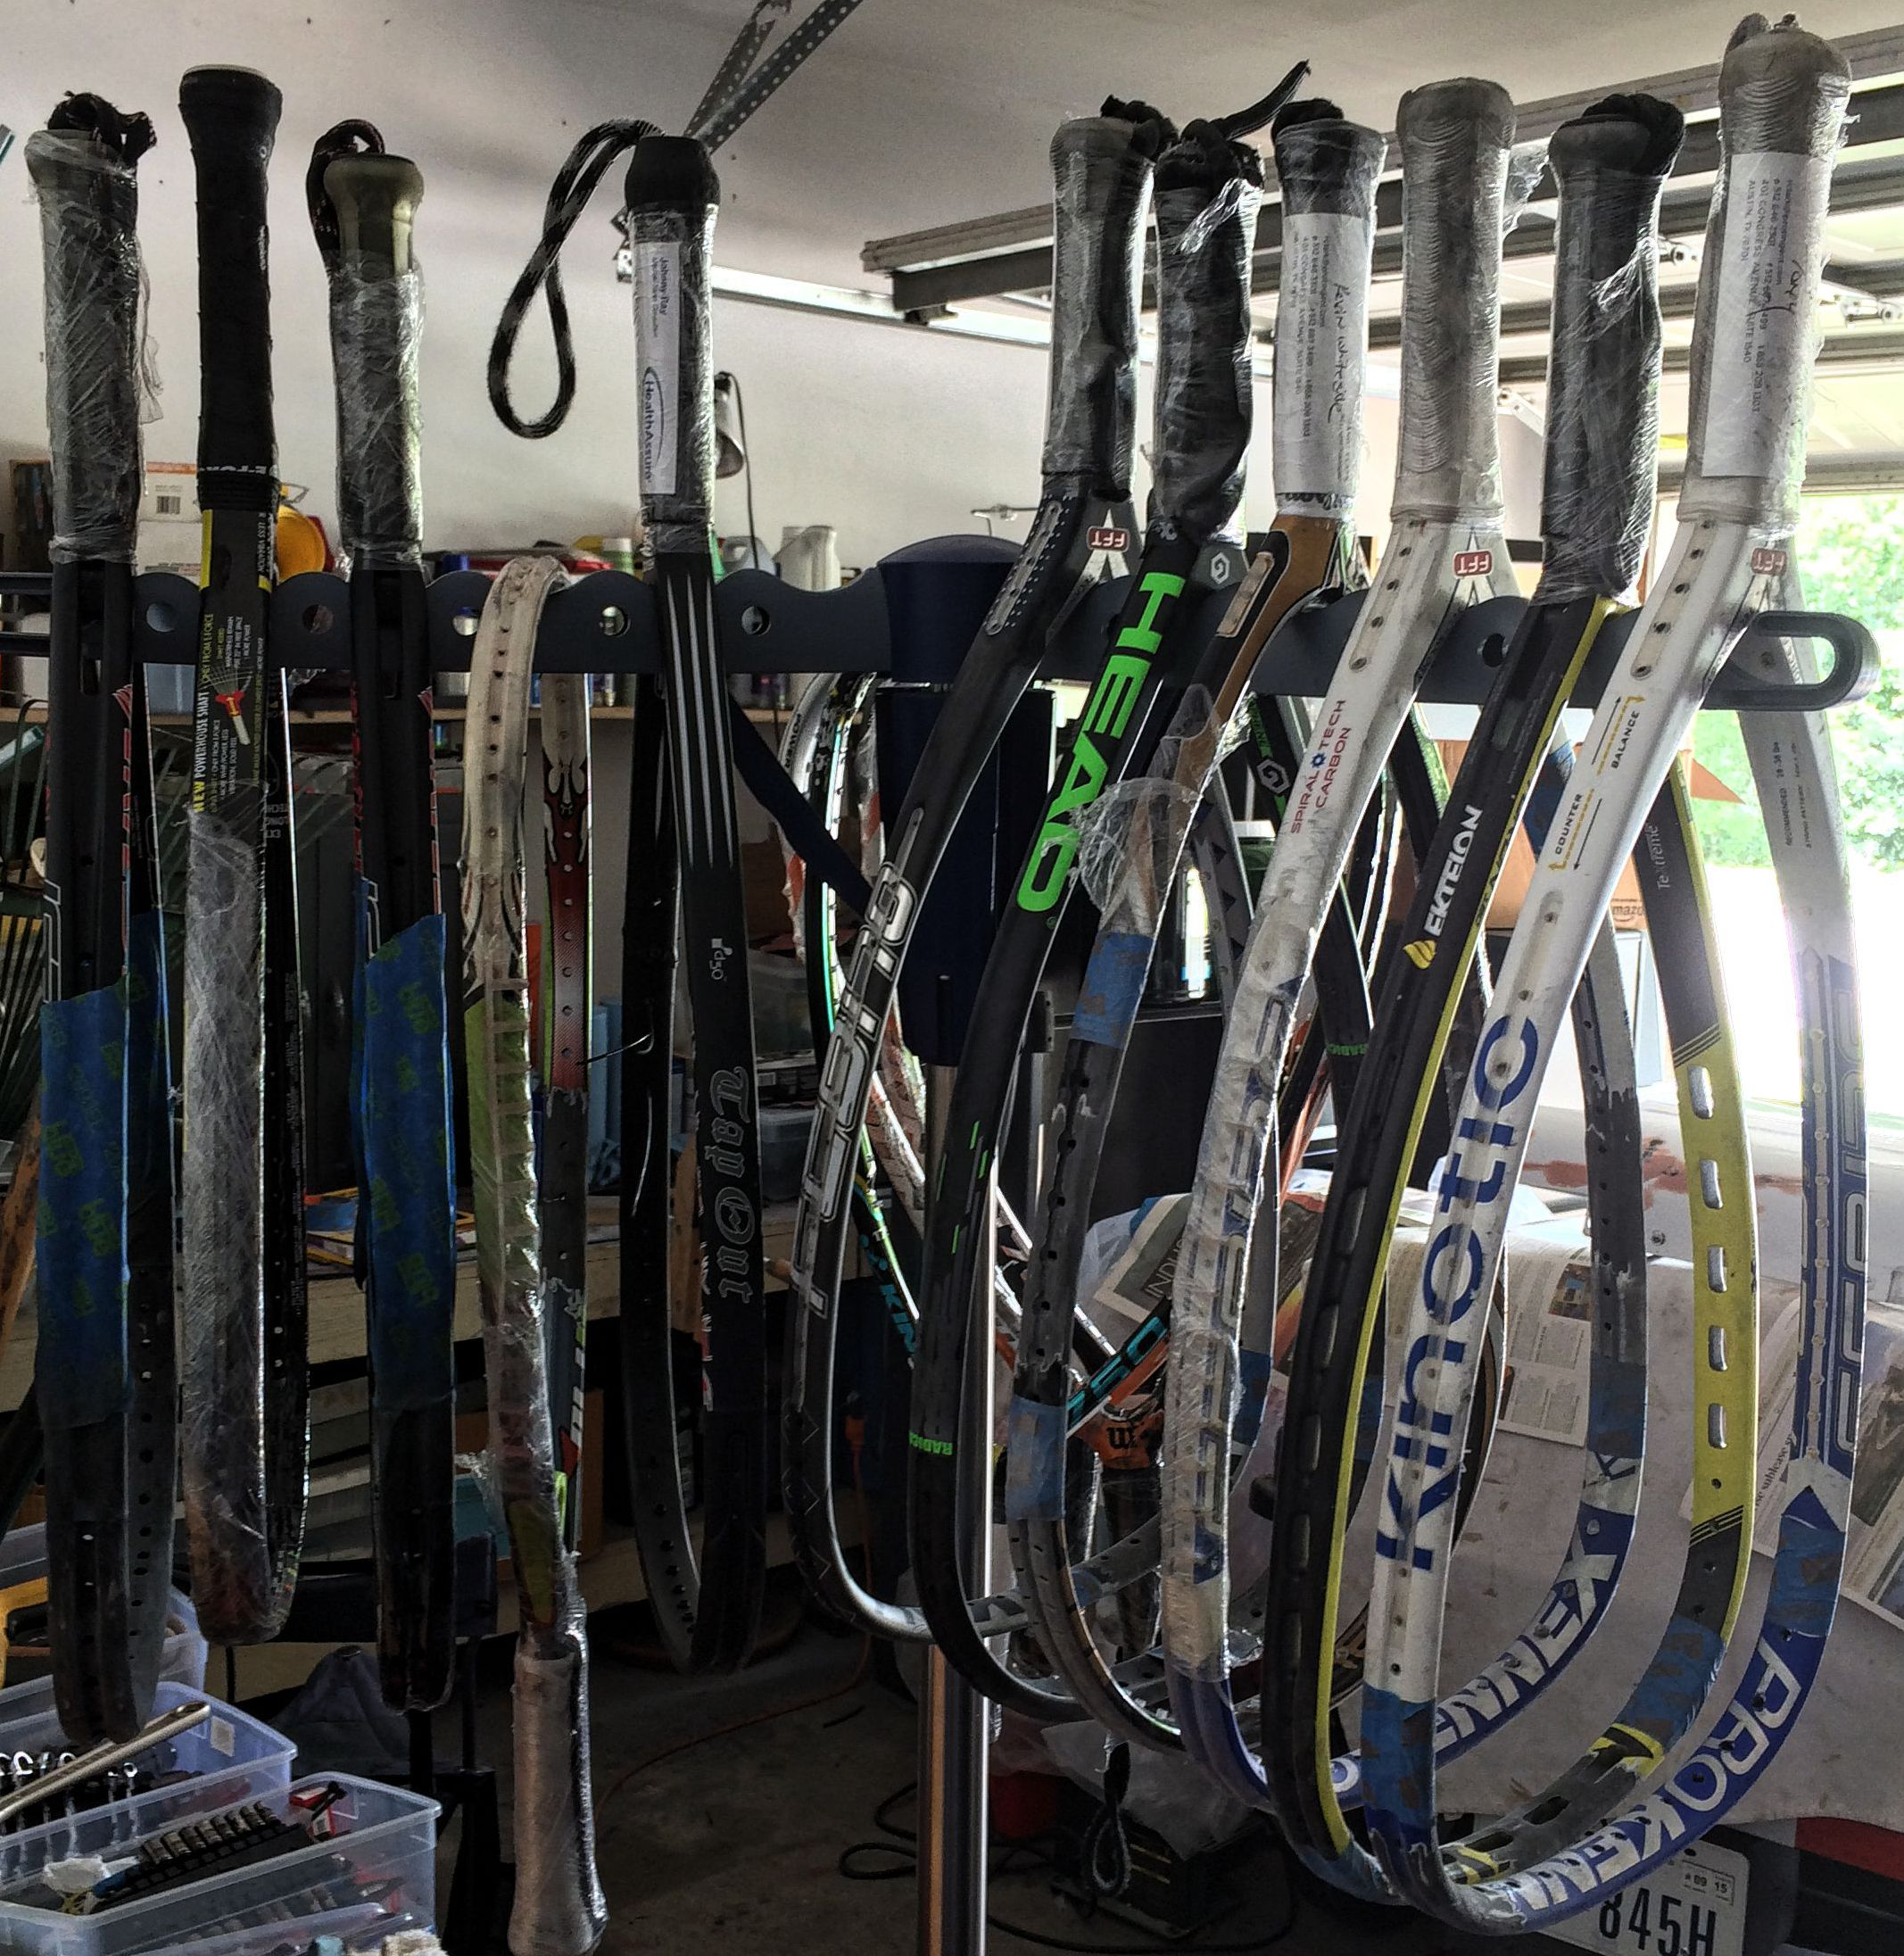 Bunch of racquets hanging 1